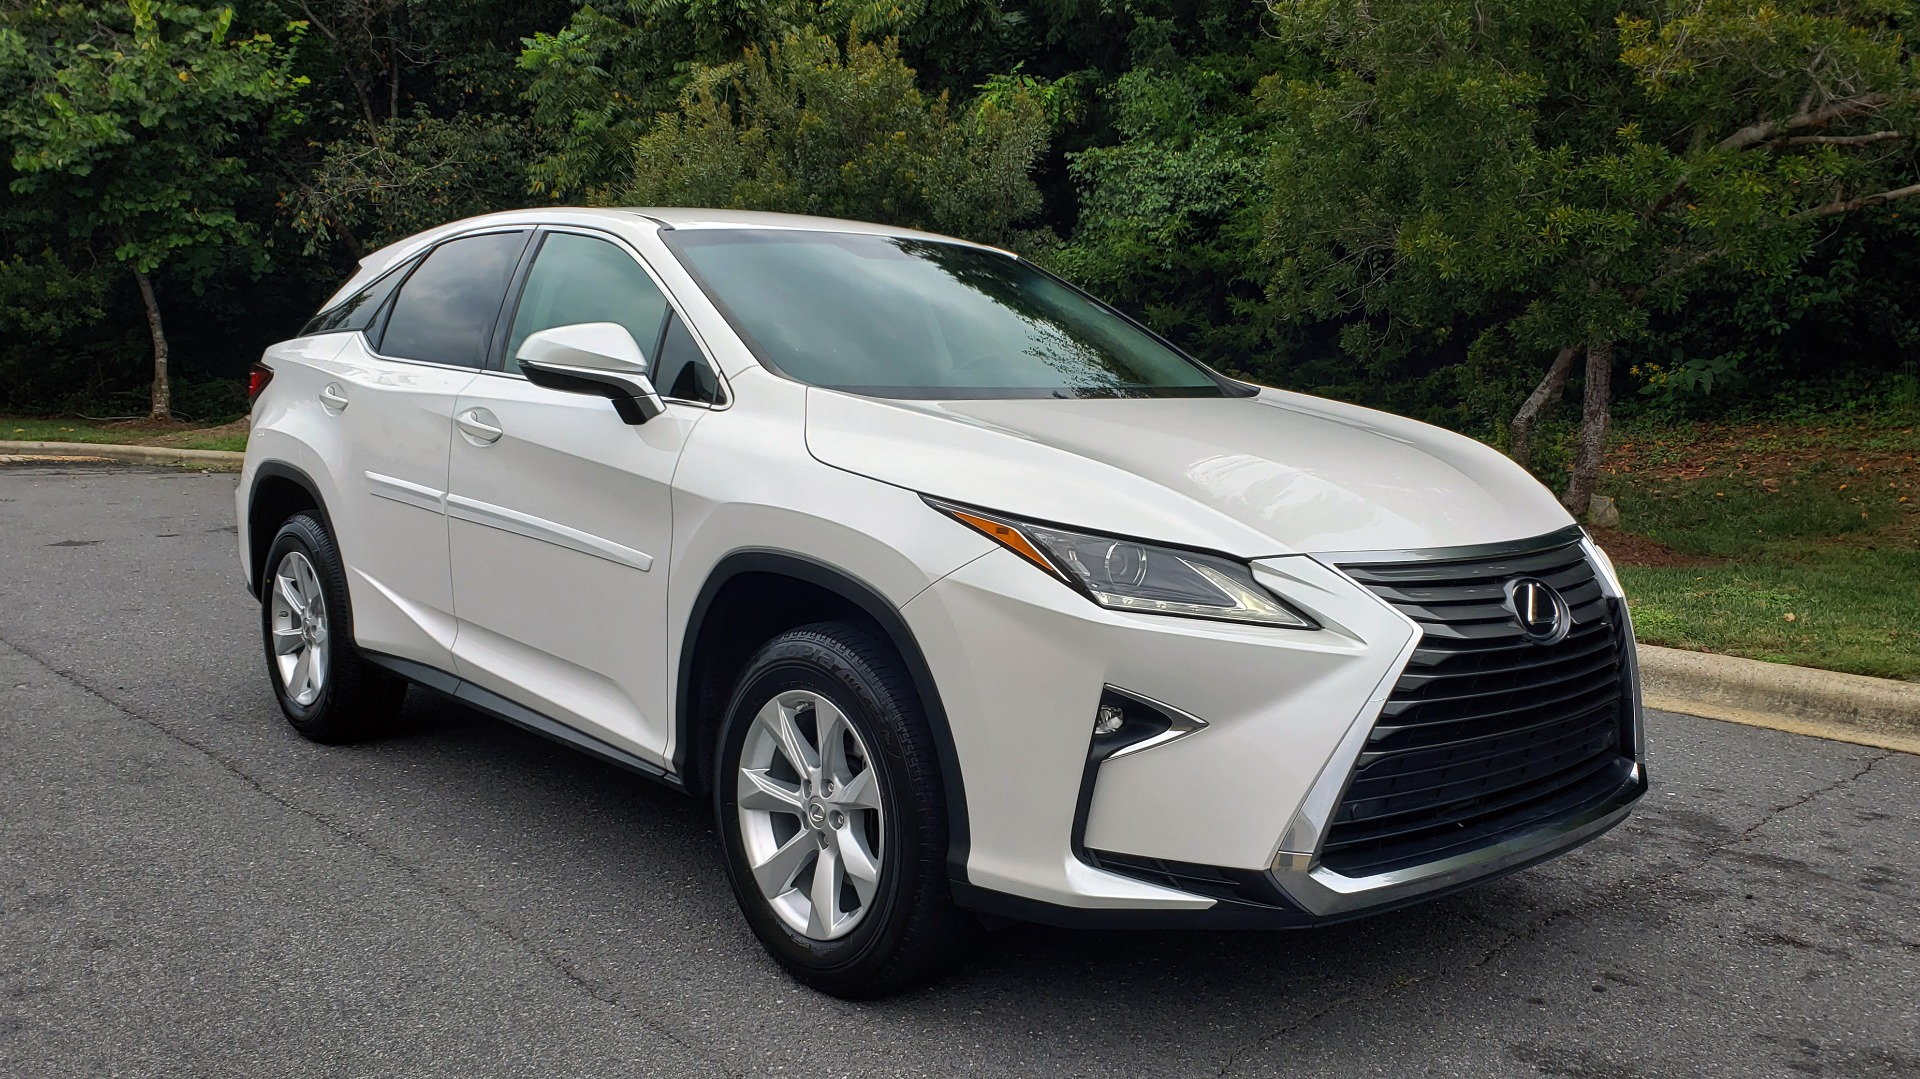 Used 2016 Lexus RX 350 FWD / 4-DR / 3.5L V6 / 8-SPD AUTO / LEATHER / REARVIEW for sale $31,995 at Formula Imports in Charlotte NC 28227 8